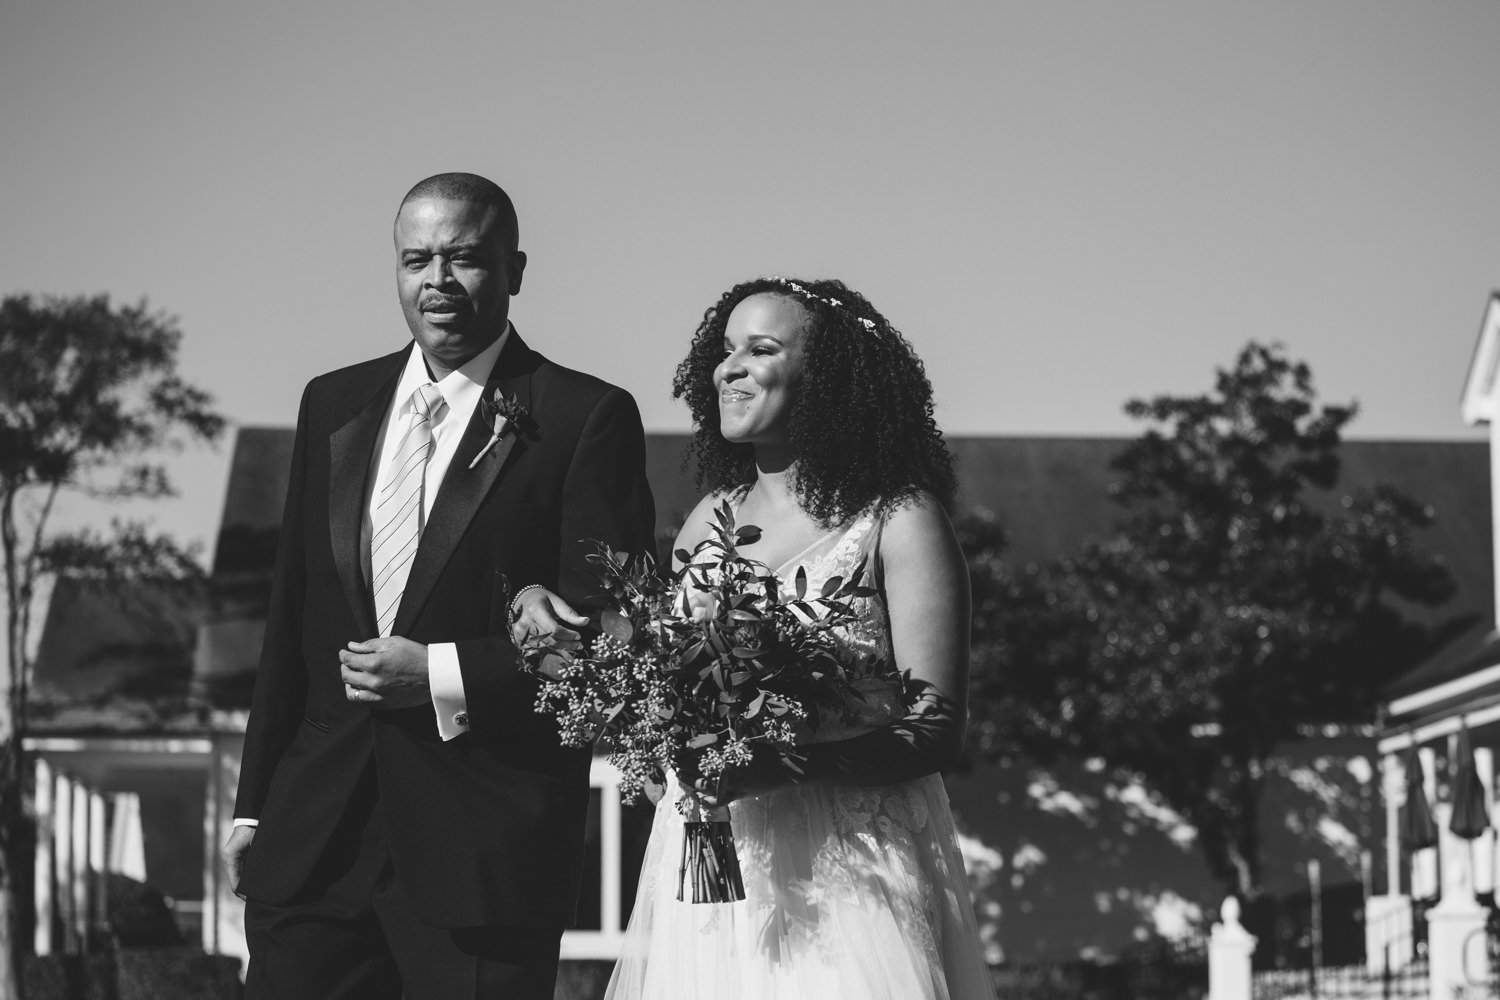 Bride and father walking down the aisle in black and white